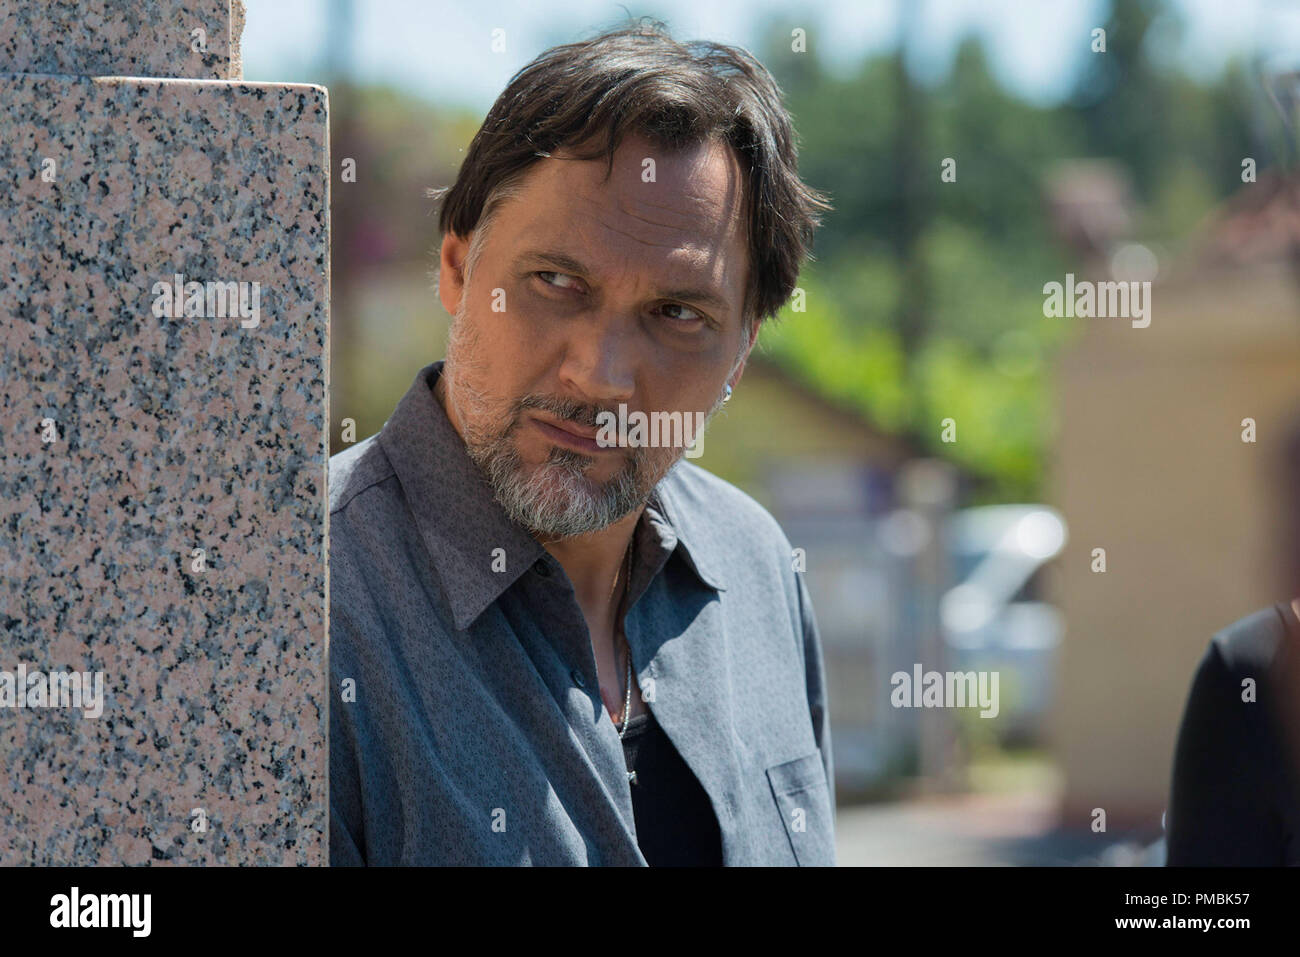 SONS OF ANARCHY Poenitentia -- Episode 603 -- Airs Tuesday, September 24, 10:00 pm e/p) -- Pictured:  Jimmy Smits as Nero Padilla -- CR: Prashant Gupta/FX - Stock Image